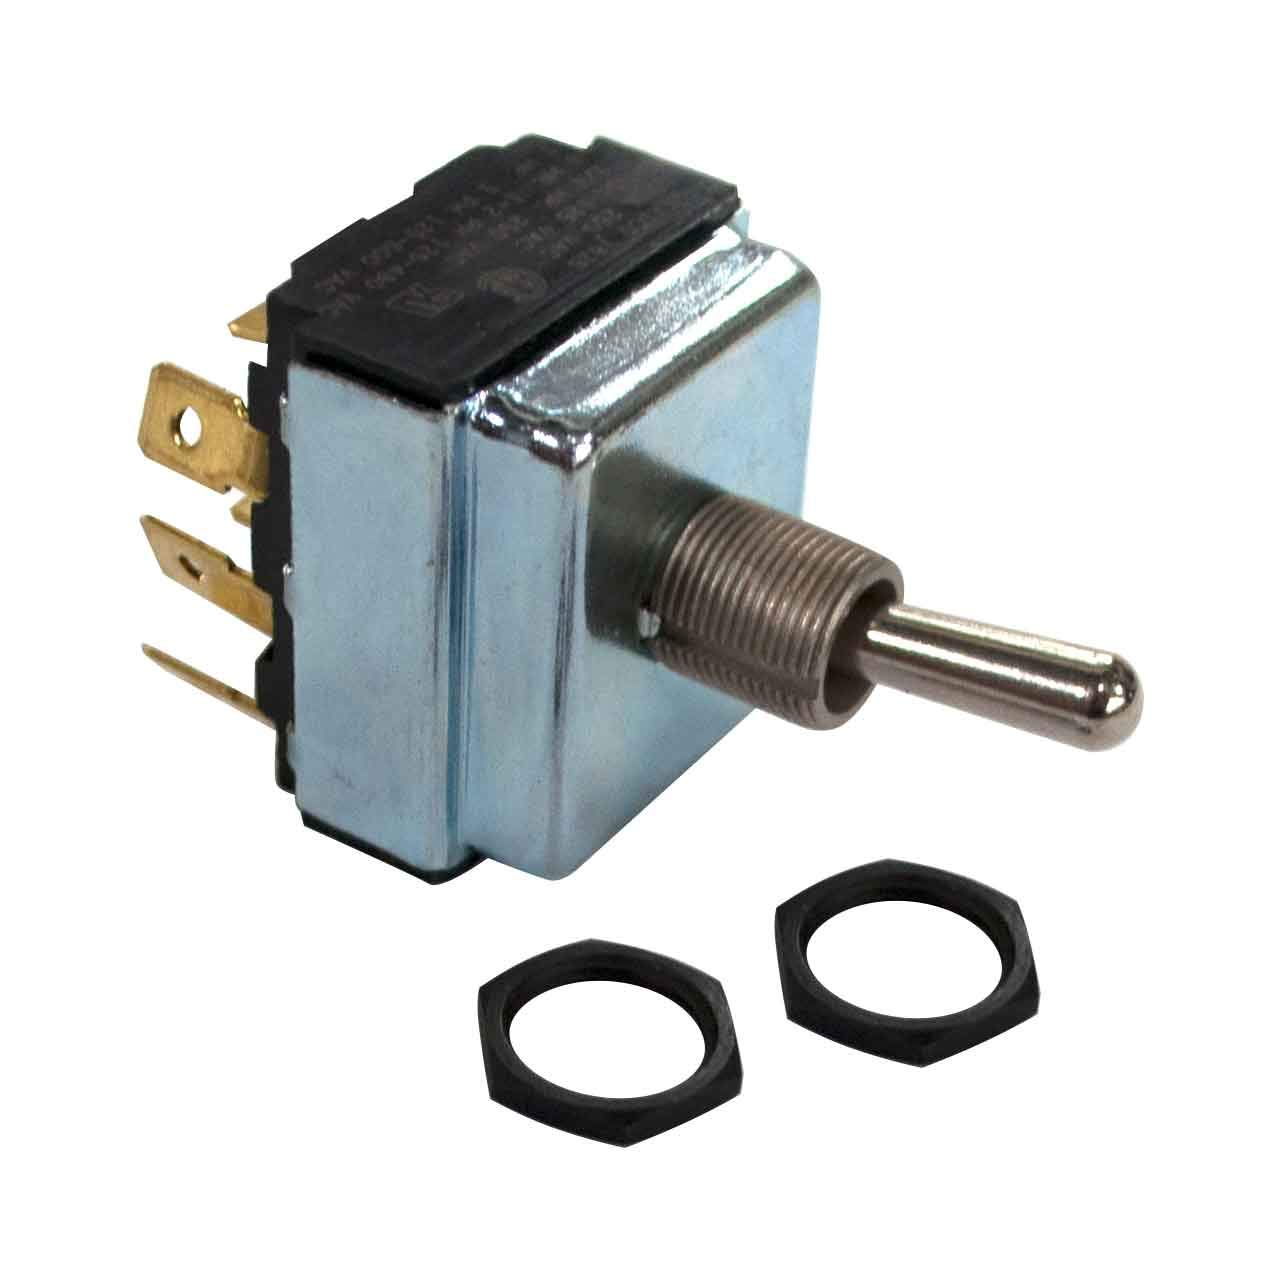 Miller 011622 Switch, Tgl 3Pdt 15A 125Vac On-None-On Spd by Miller Electric